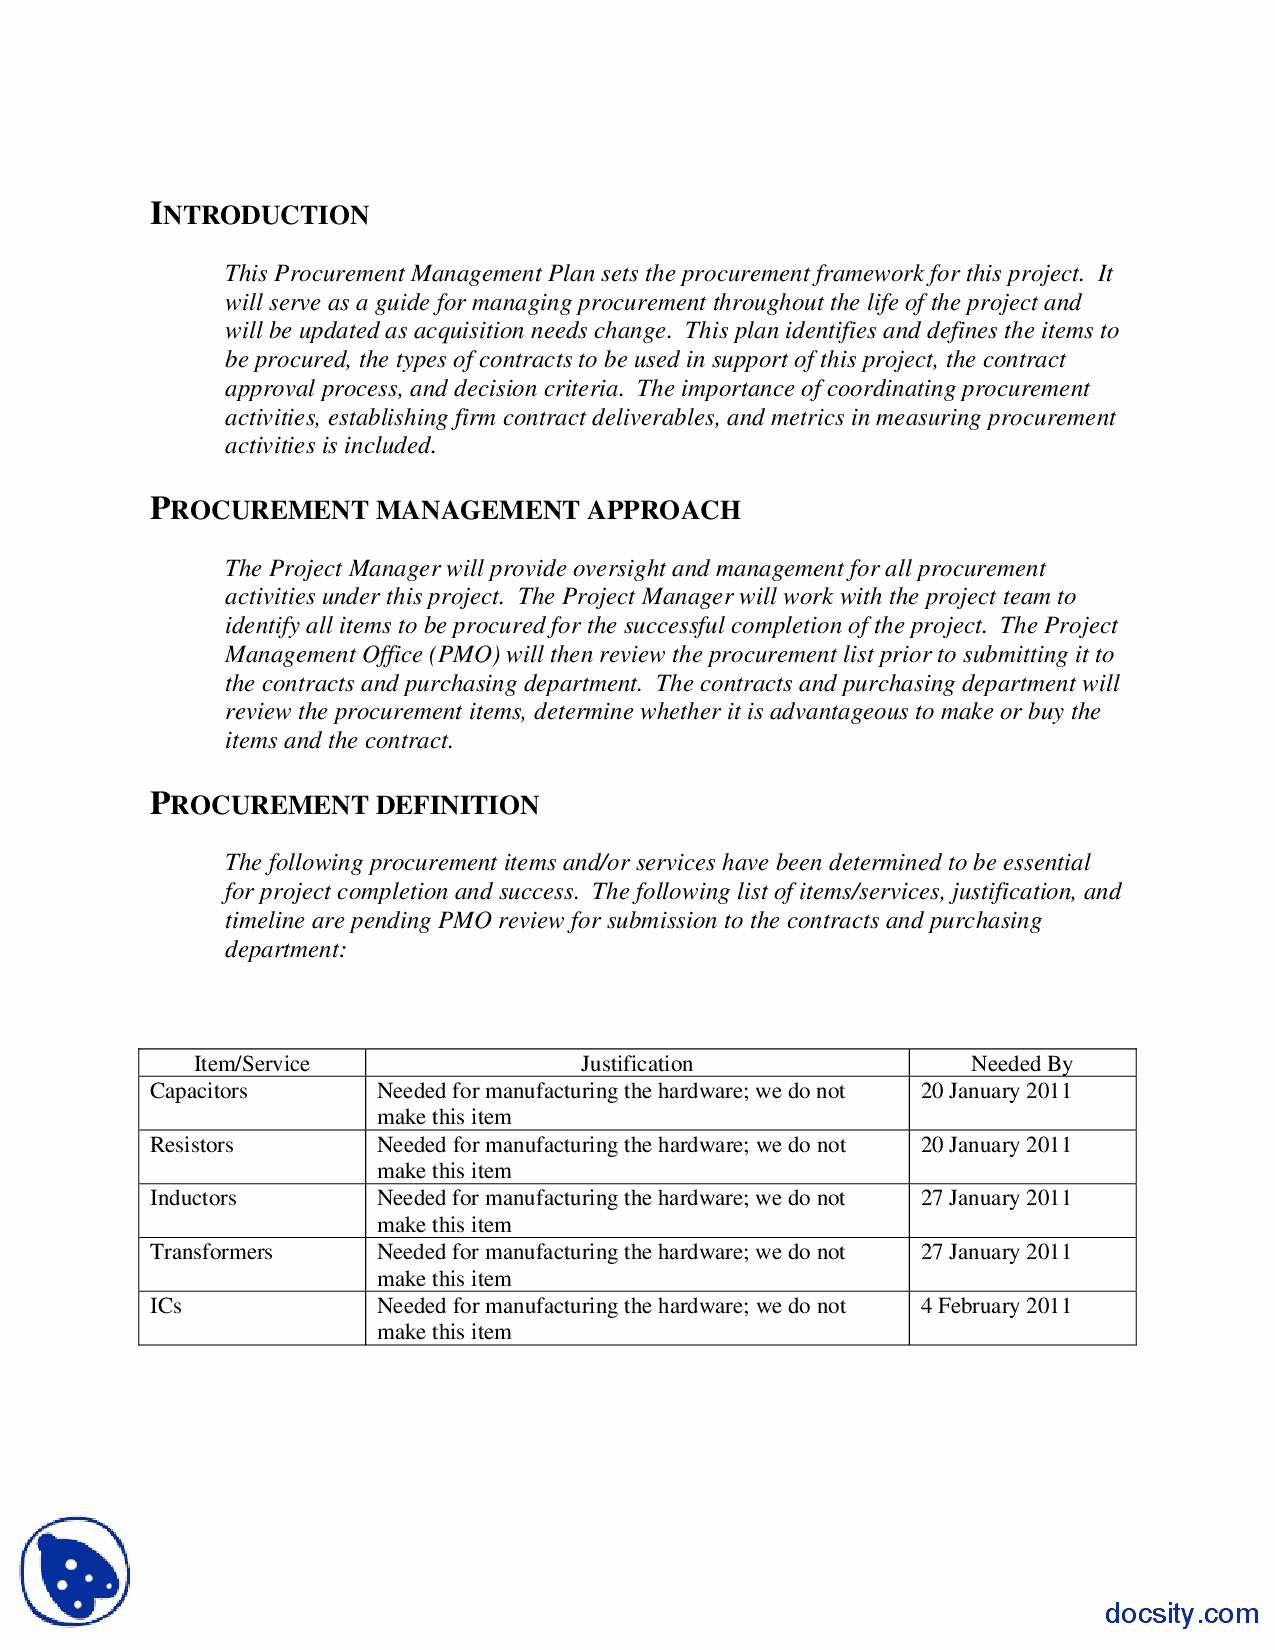 Project Management Plan Example Lovely Procurement Management Plan Example Engineering Project